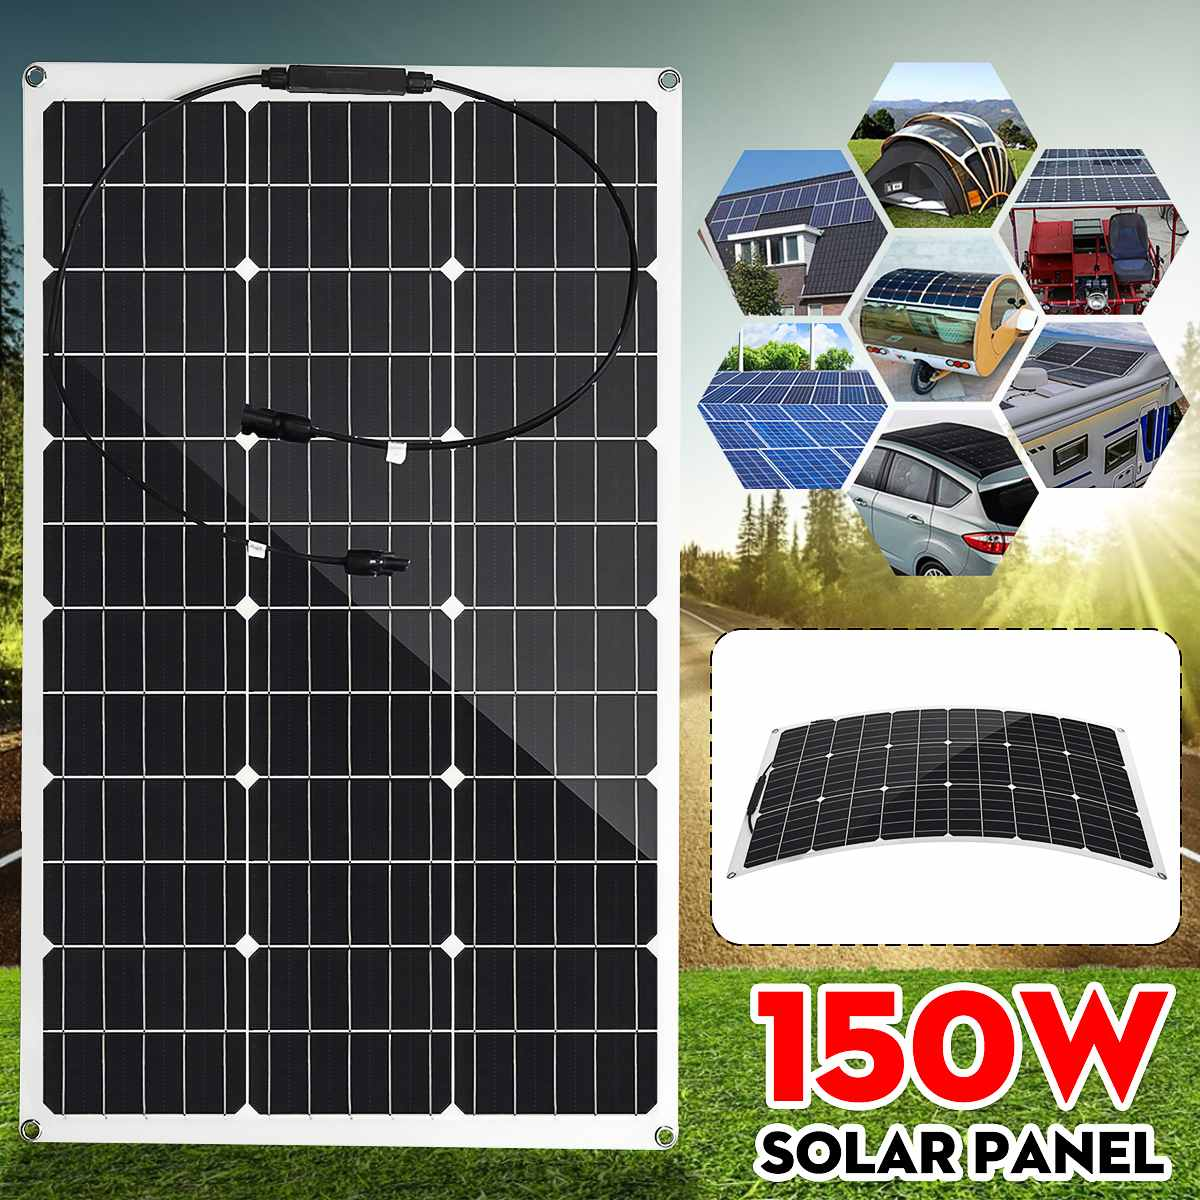 <font><b>150W</b></font> Semi-flexible <font><b>Solar</b></font> <font><b>Panel</b></font> 18V Monocrystalline <font><b>Solar</b></font> Cell DIY Module Cable Outdoor Connector Battery Charger Waterproof image